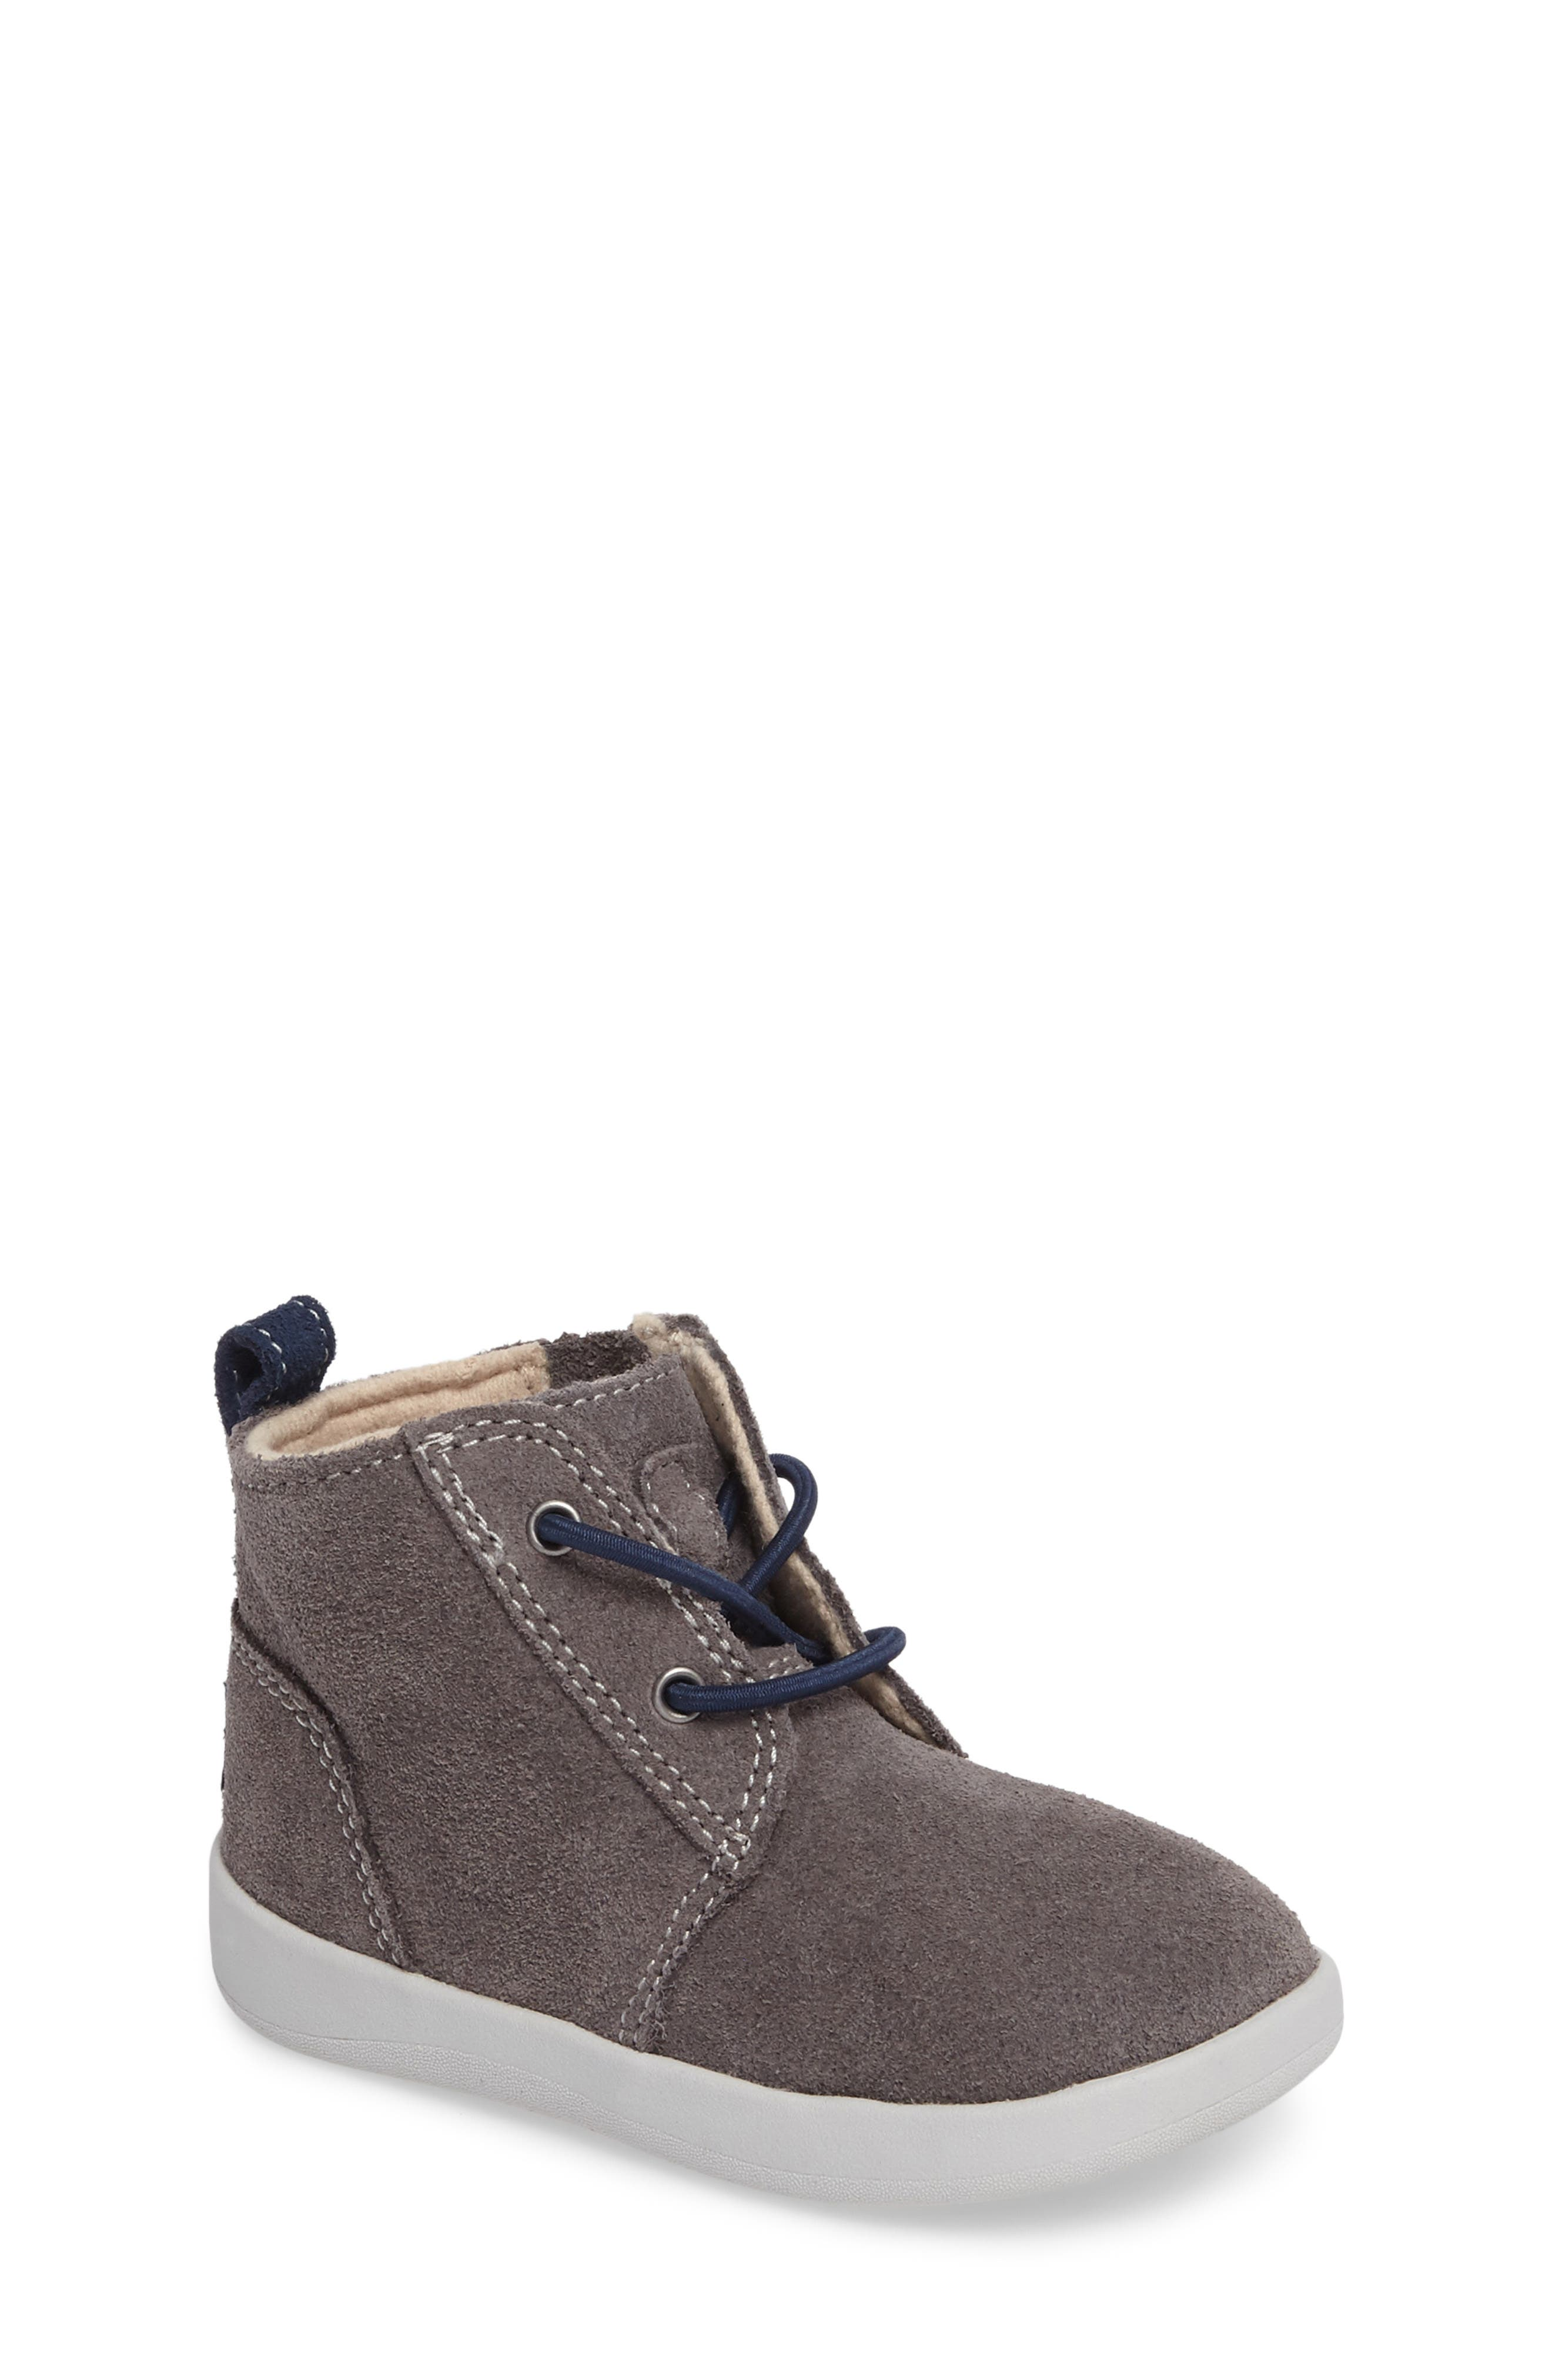 Alternate Image 1 Selected - UGG® Kristjan Chukka Bootie Sneaker (Baby & Walker)